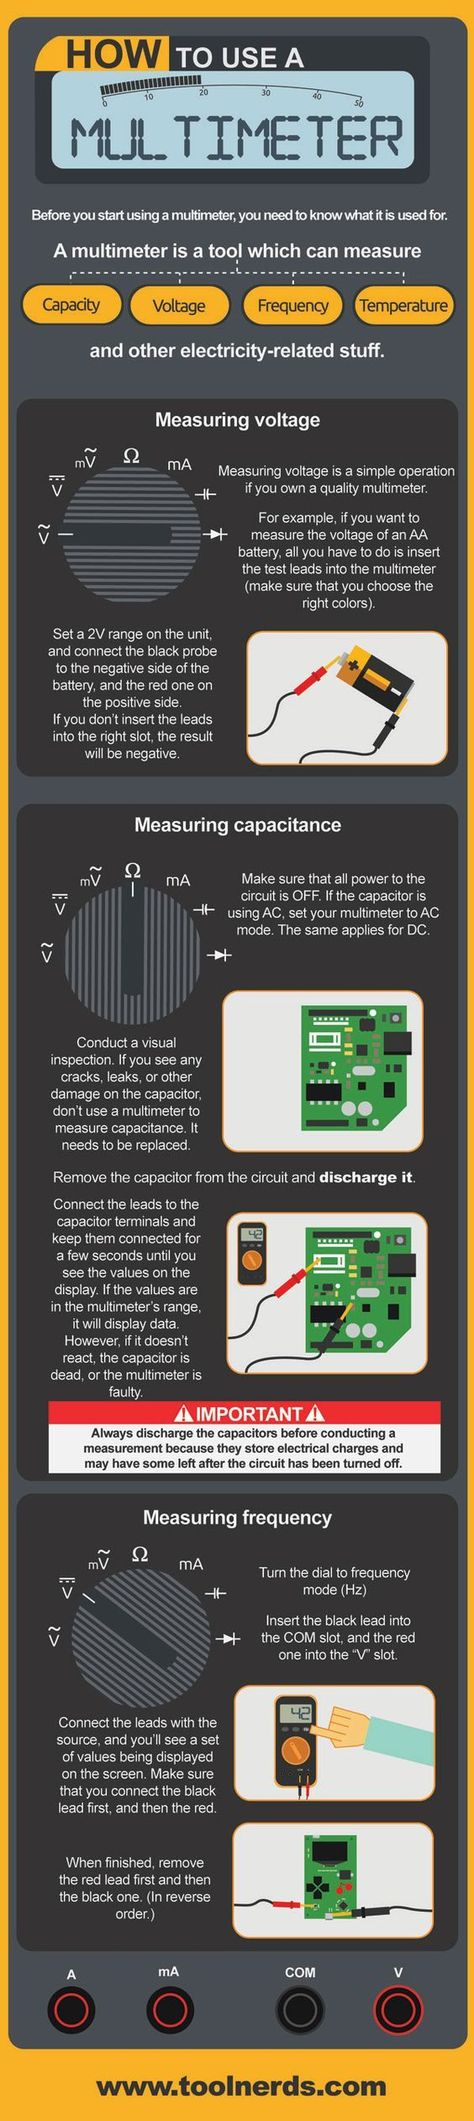 How To Properly Use a Multimeter (Infographic)